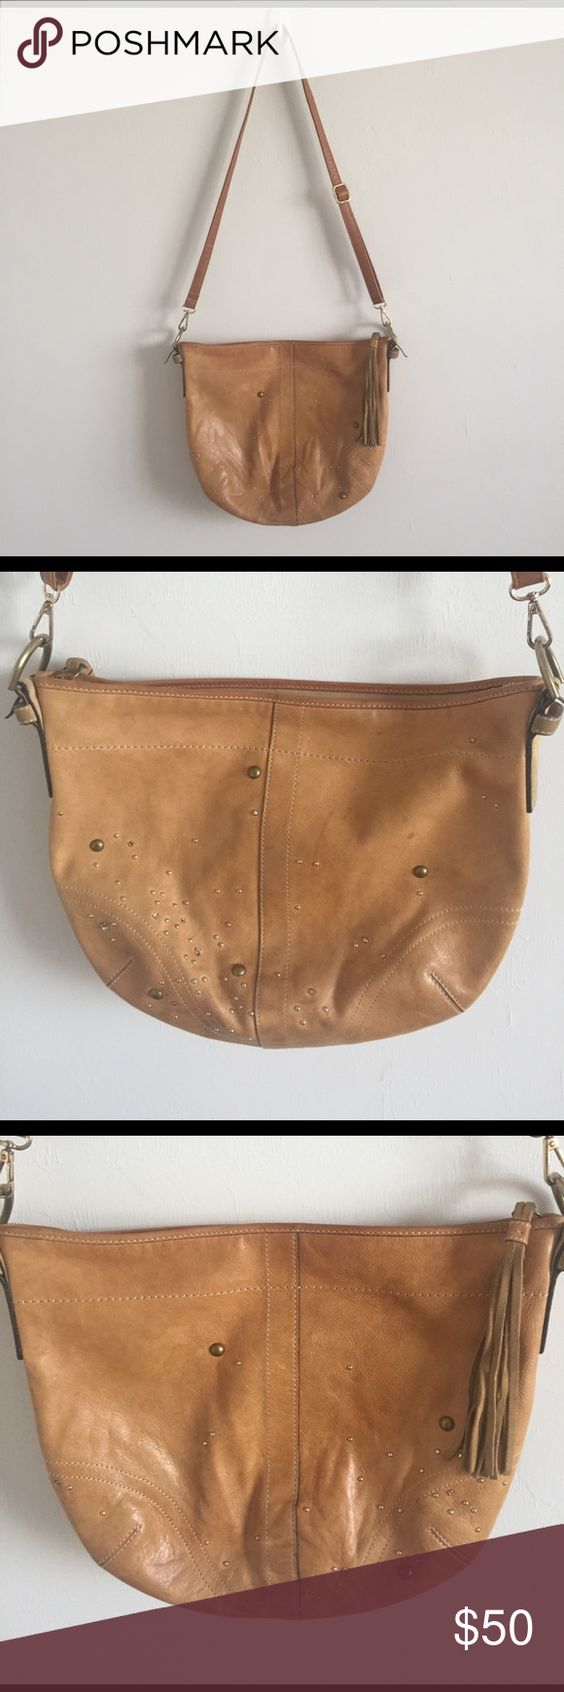 Coach hobo style leather bag | Hobo style, Coaches and Coach bags